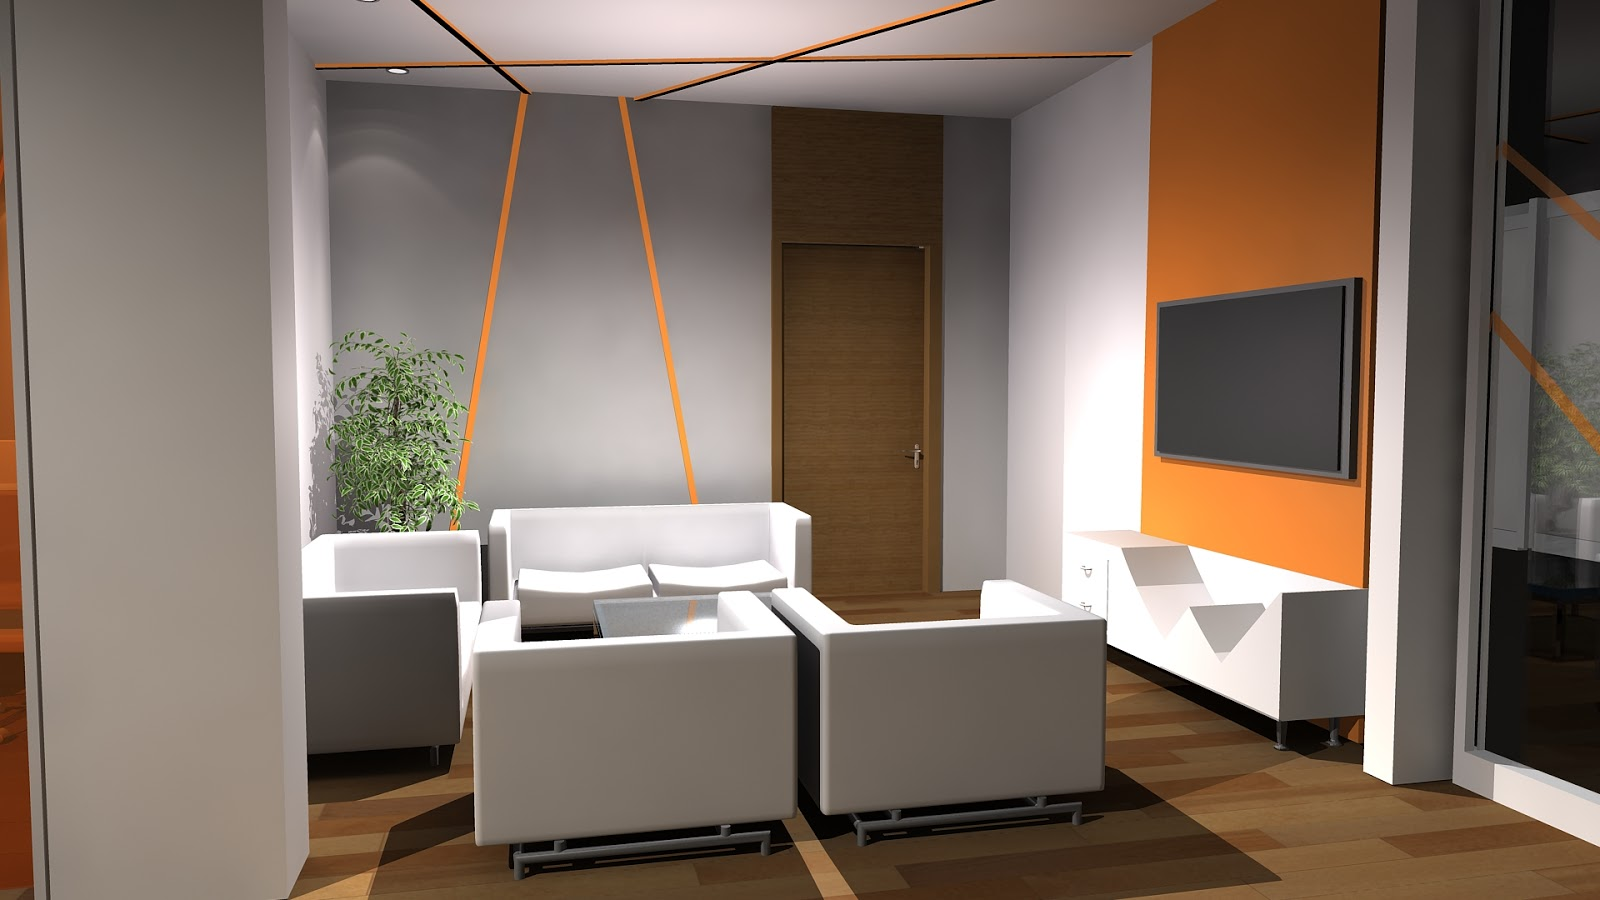 Sajid designer interior design office 3ds max for 3ds max interior design files